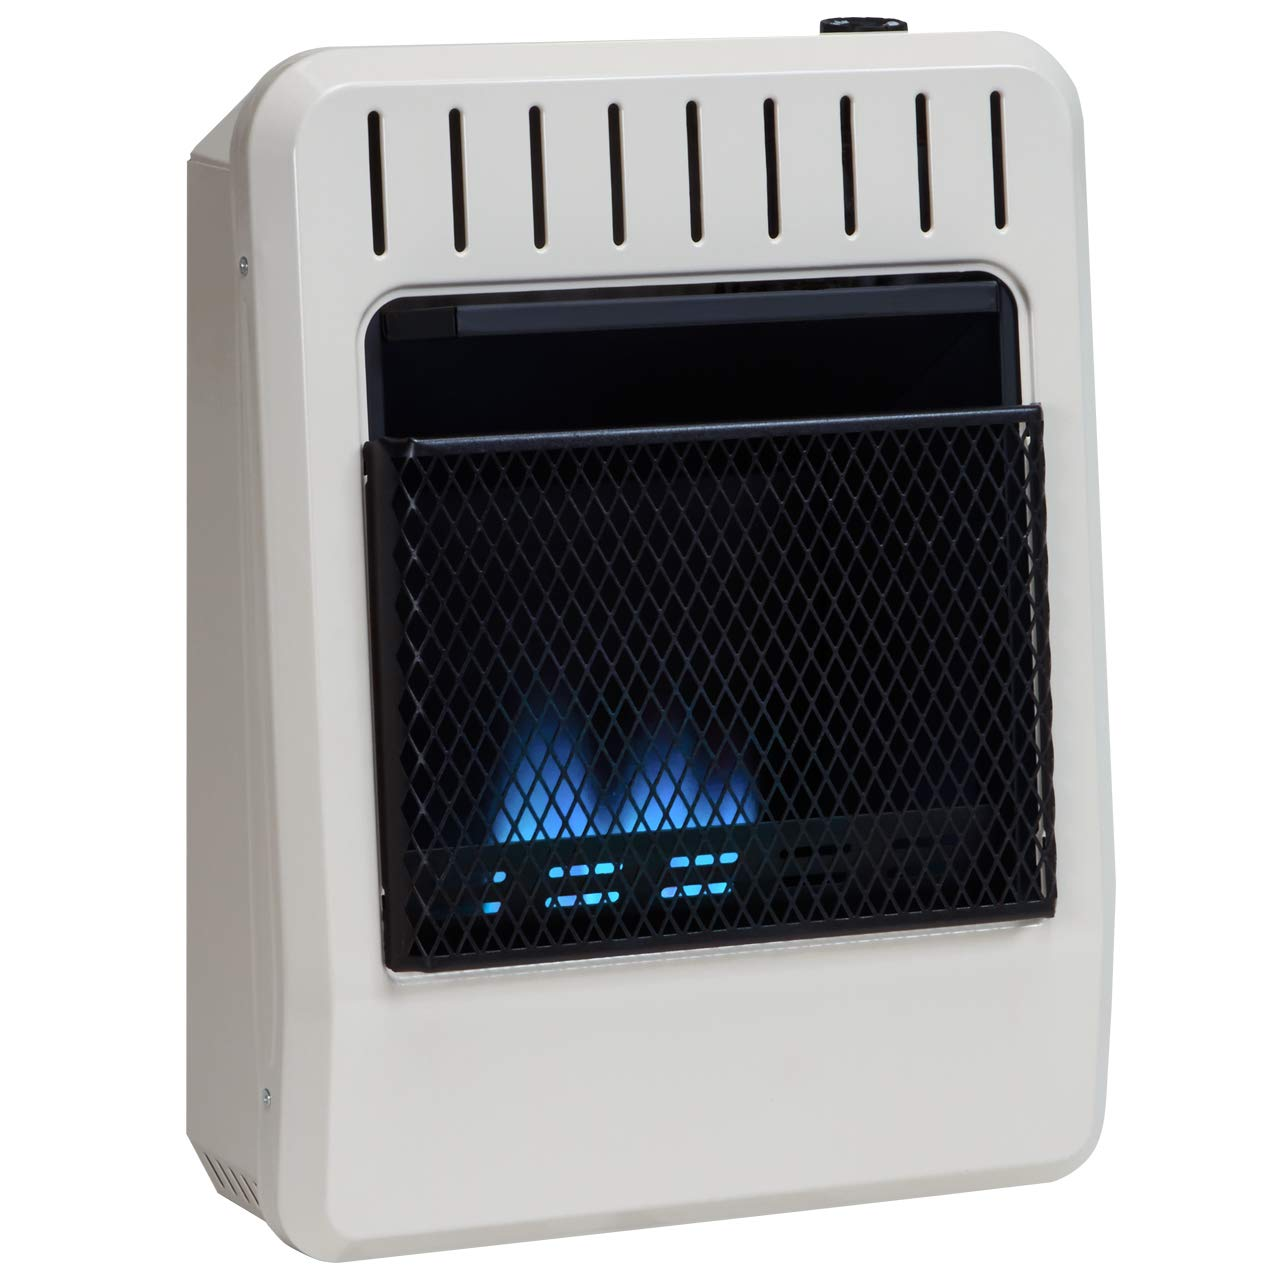 Avenger Dual Fuel Ventless Blue Flame Heater - 10,000 BTU, Model# FDT10BFA by Avenger